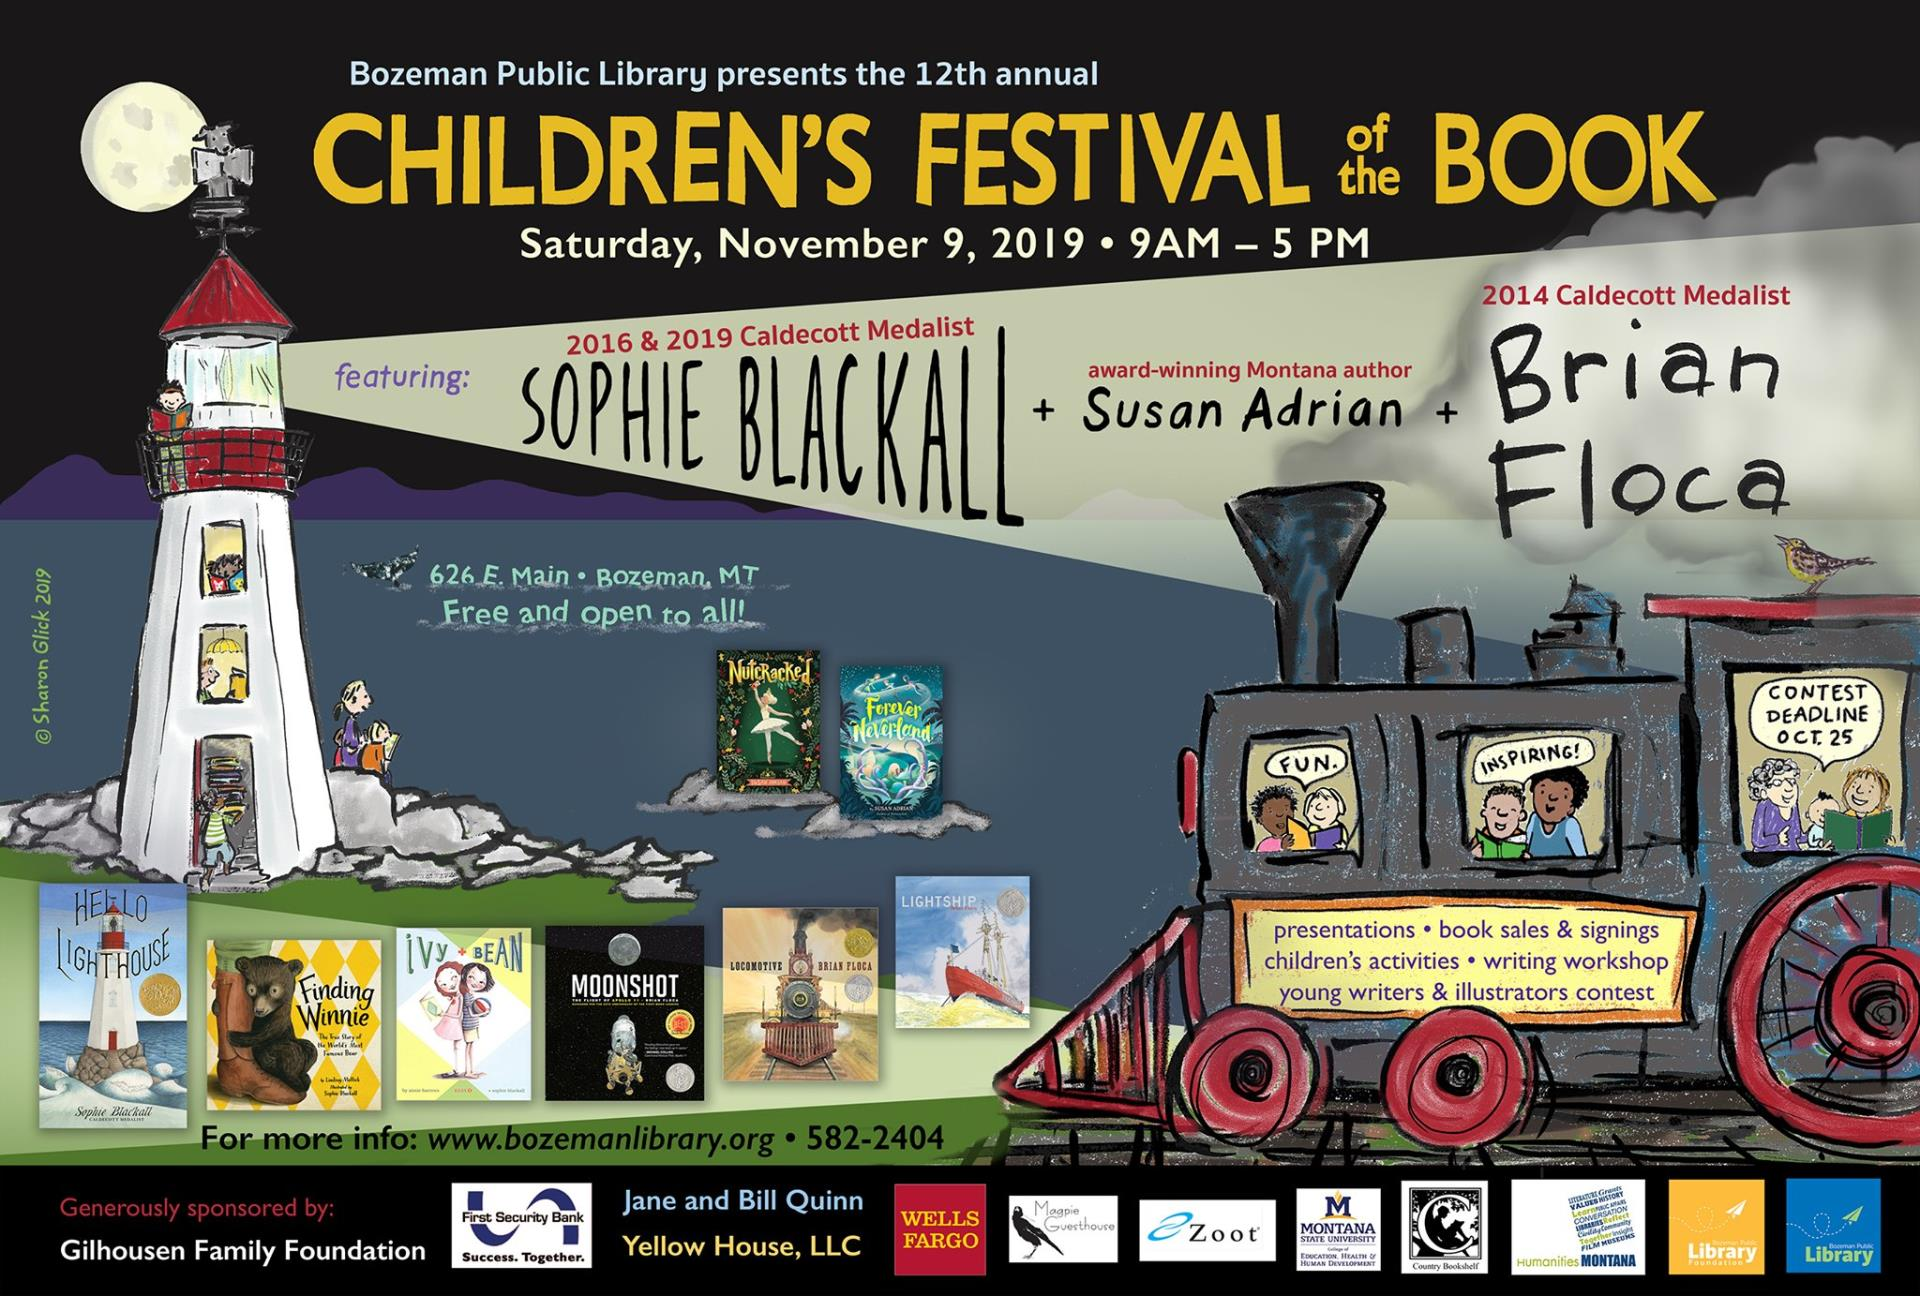 childrens festival of the book 2019 poster image